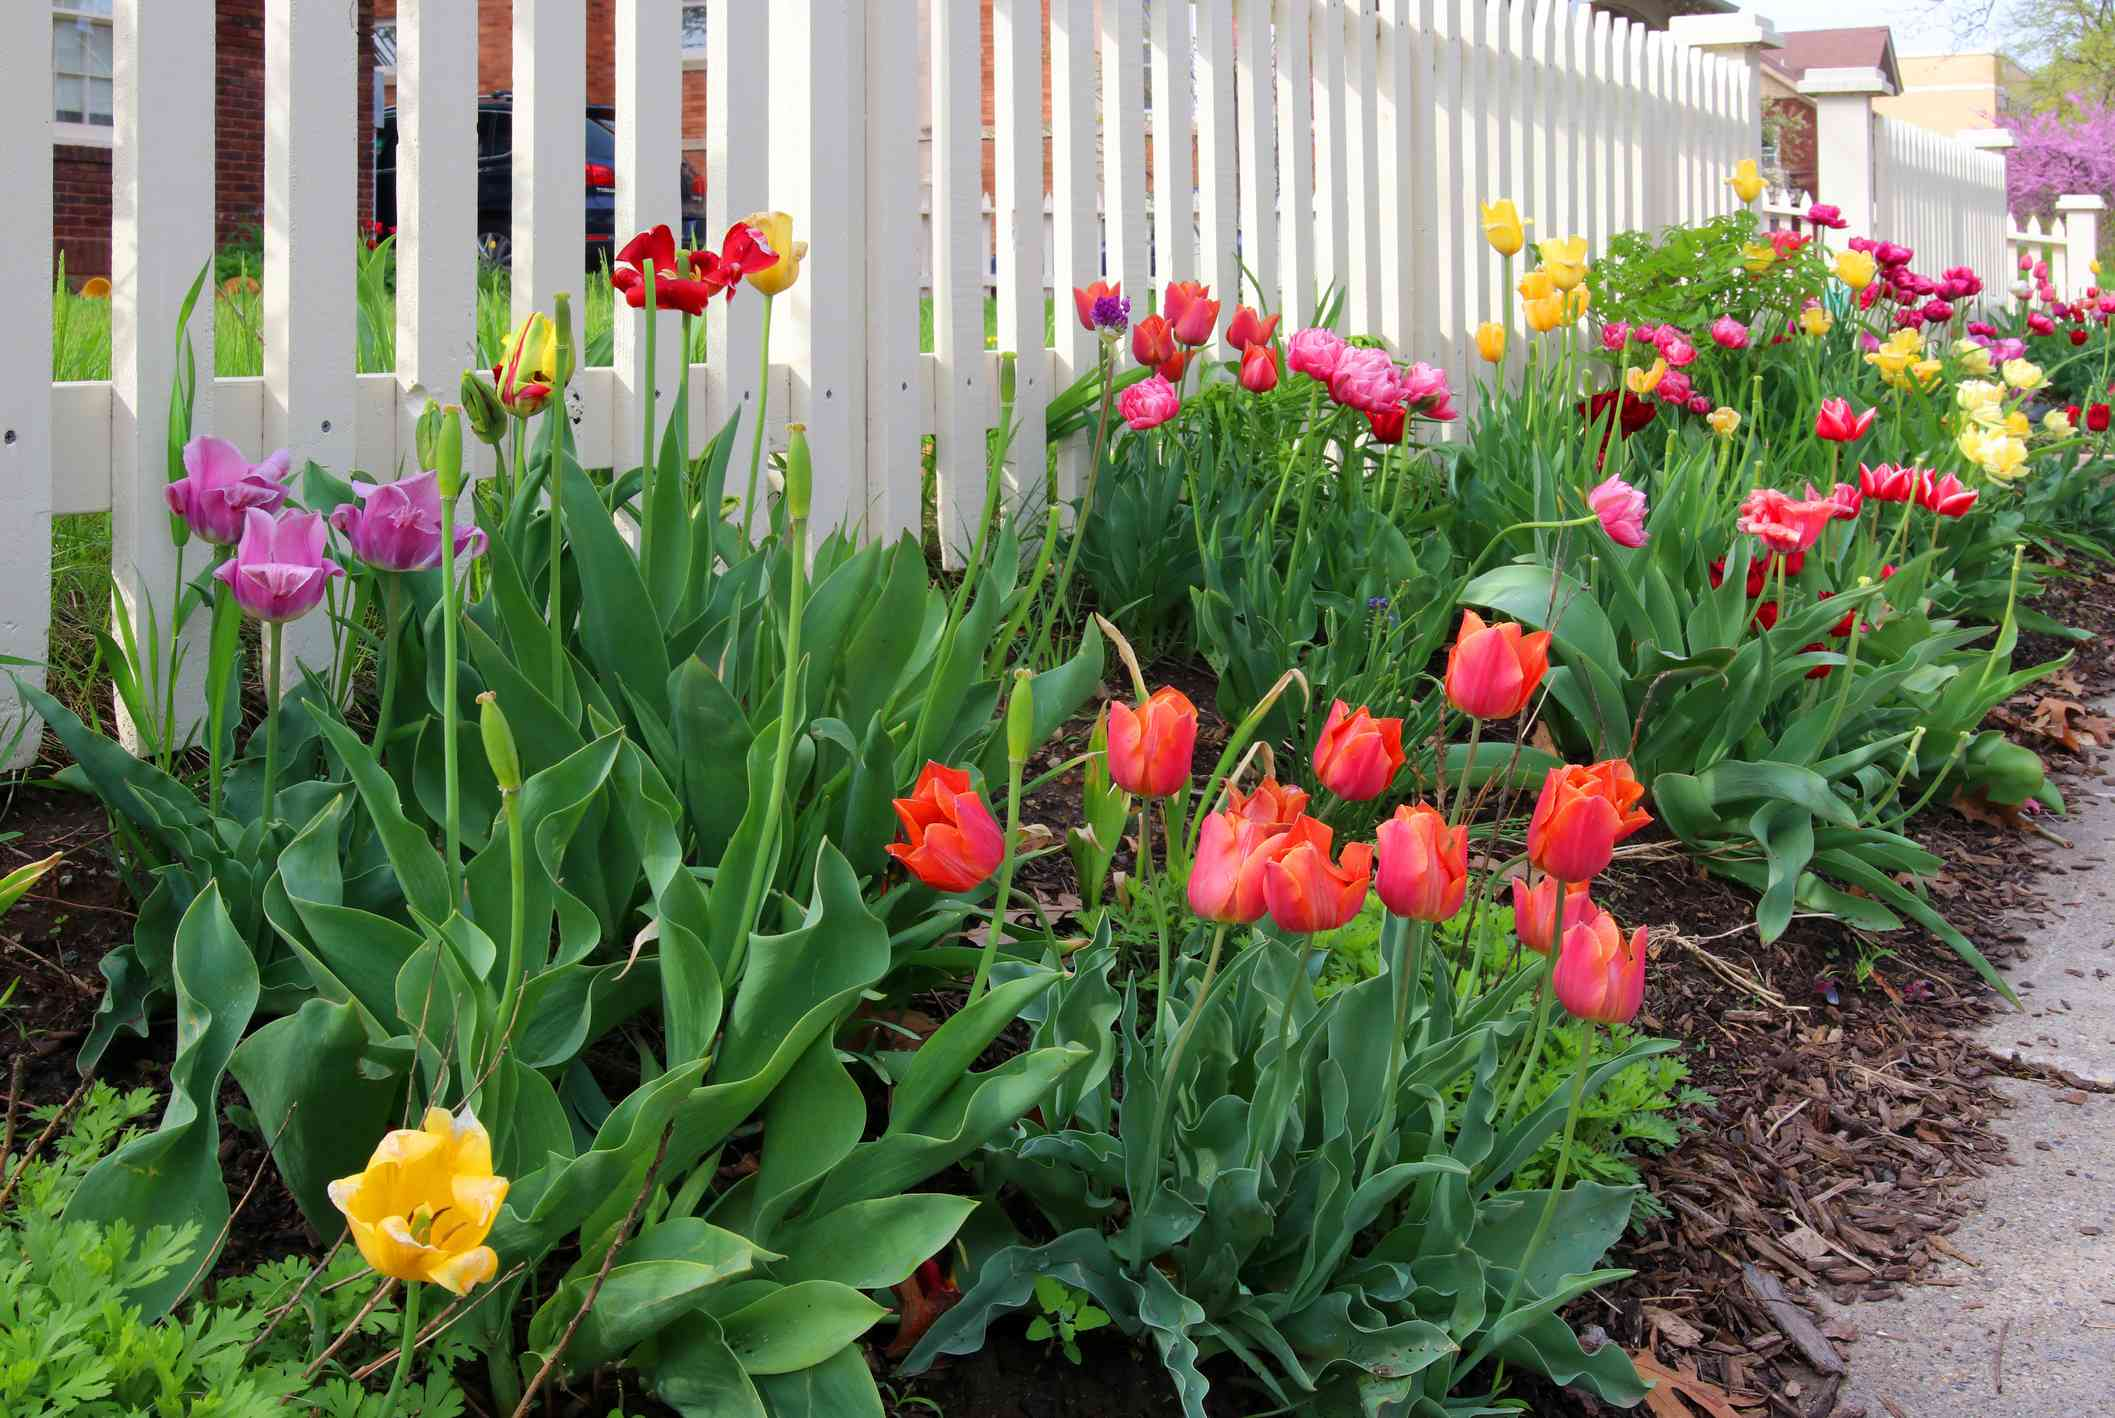 Tulips in various colors planted along a white picket fence